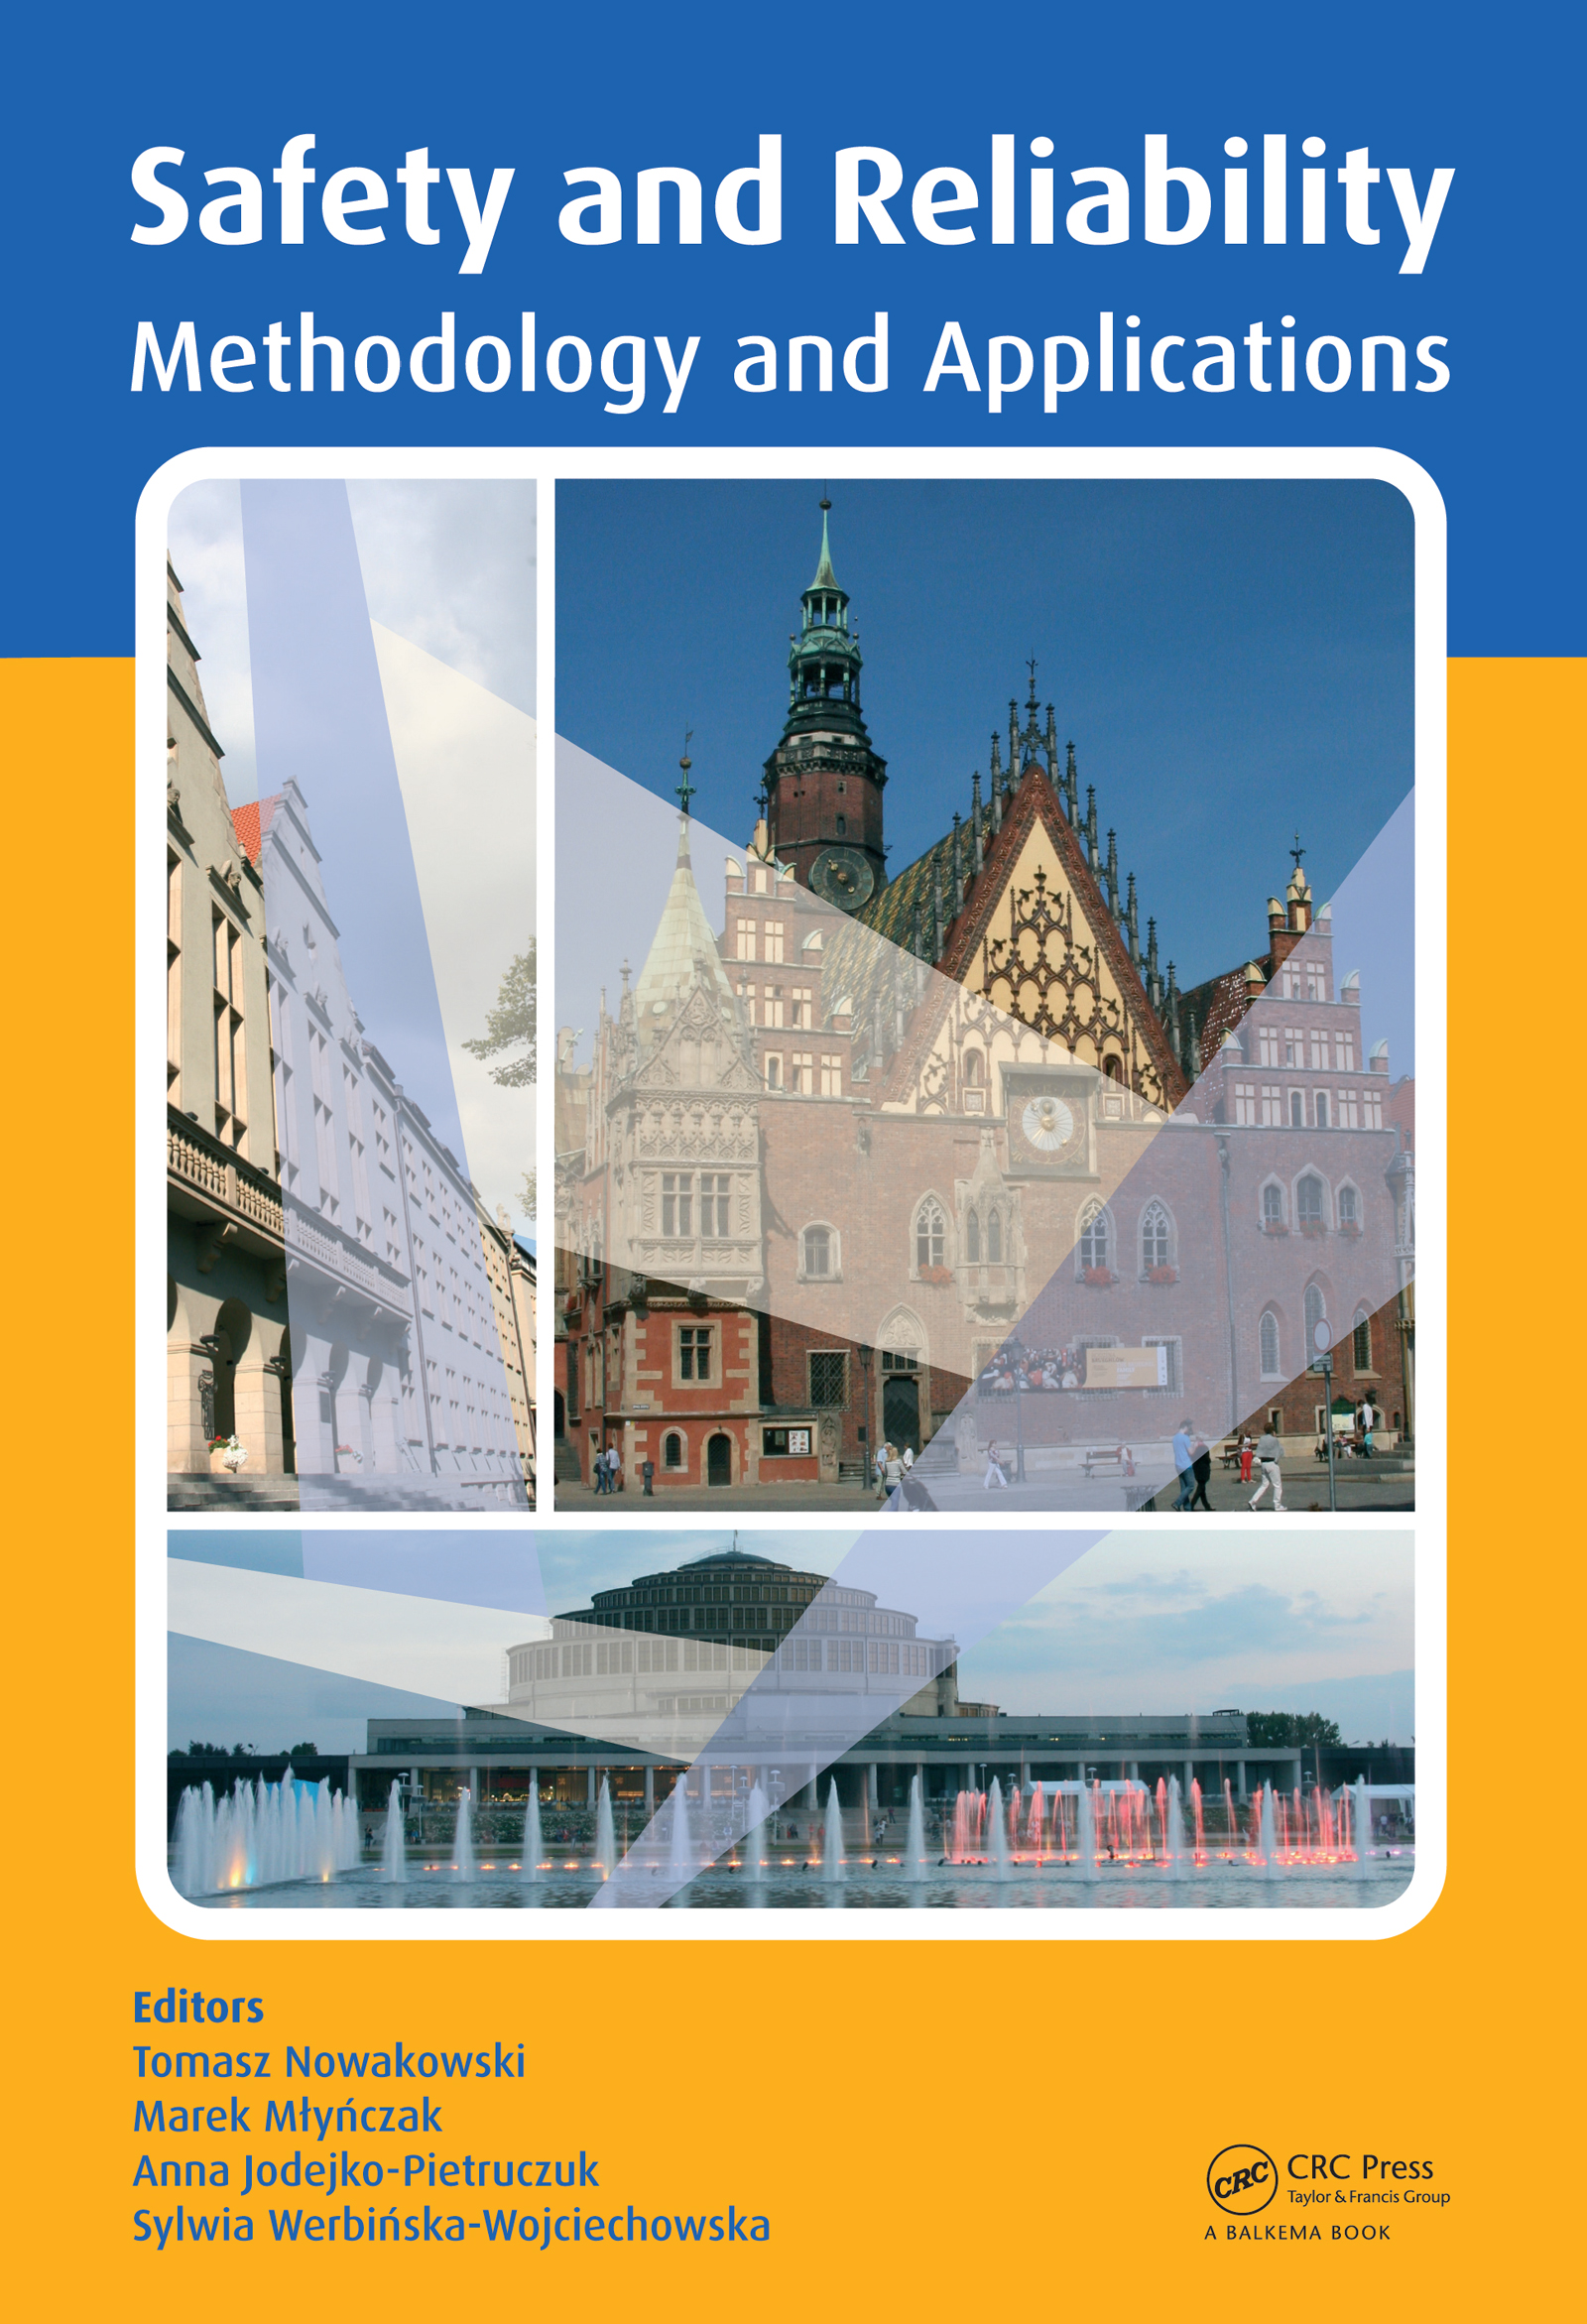 Safety and Reliability: Methodology and Applications: 1st Edition (Pack - Book and CD) book cover